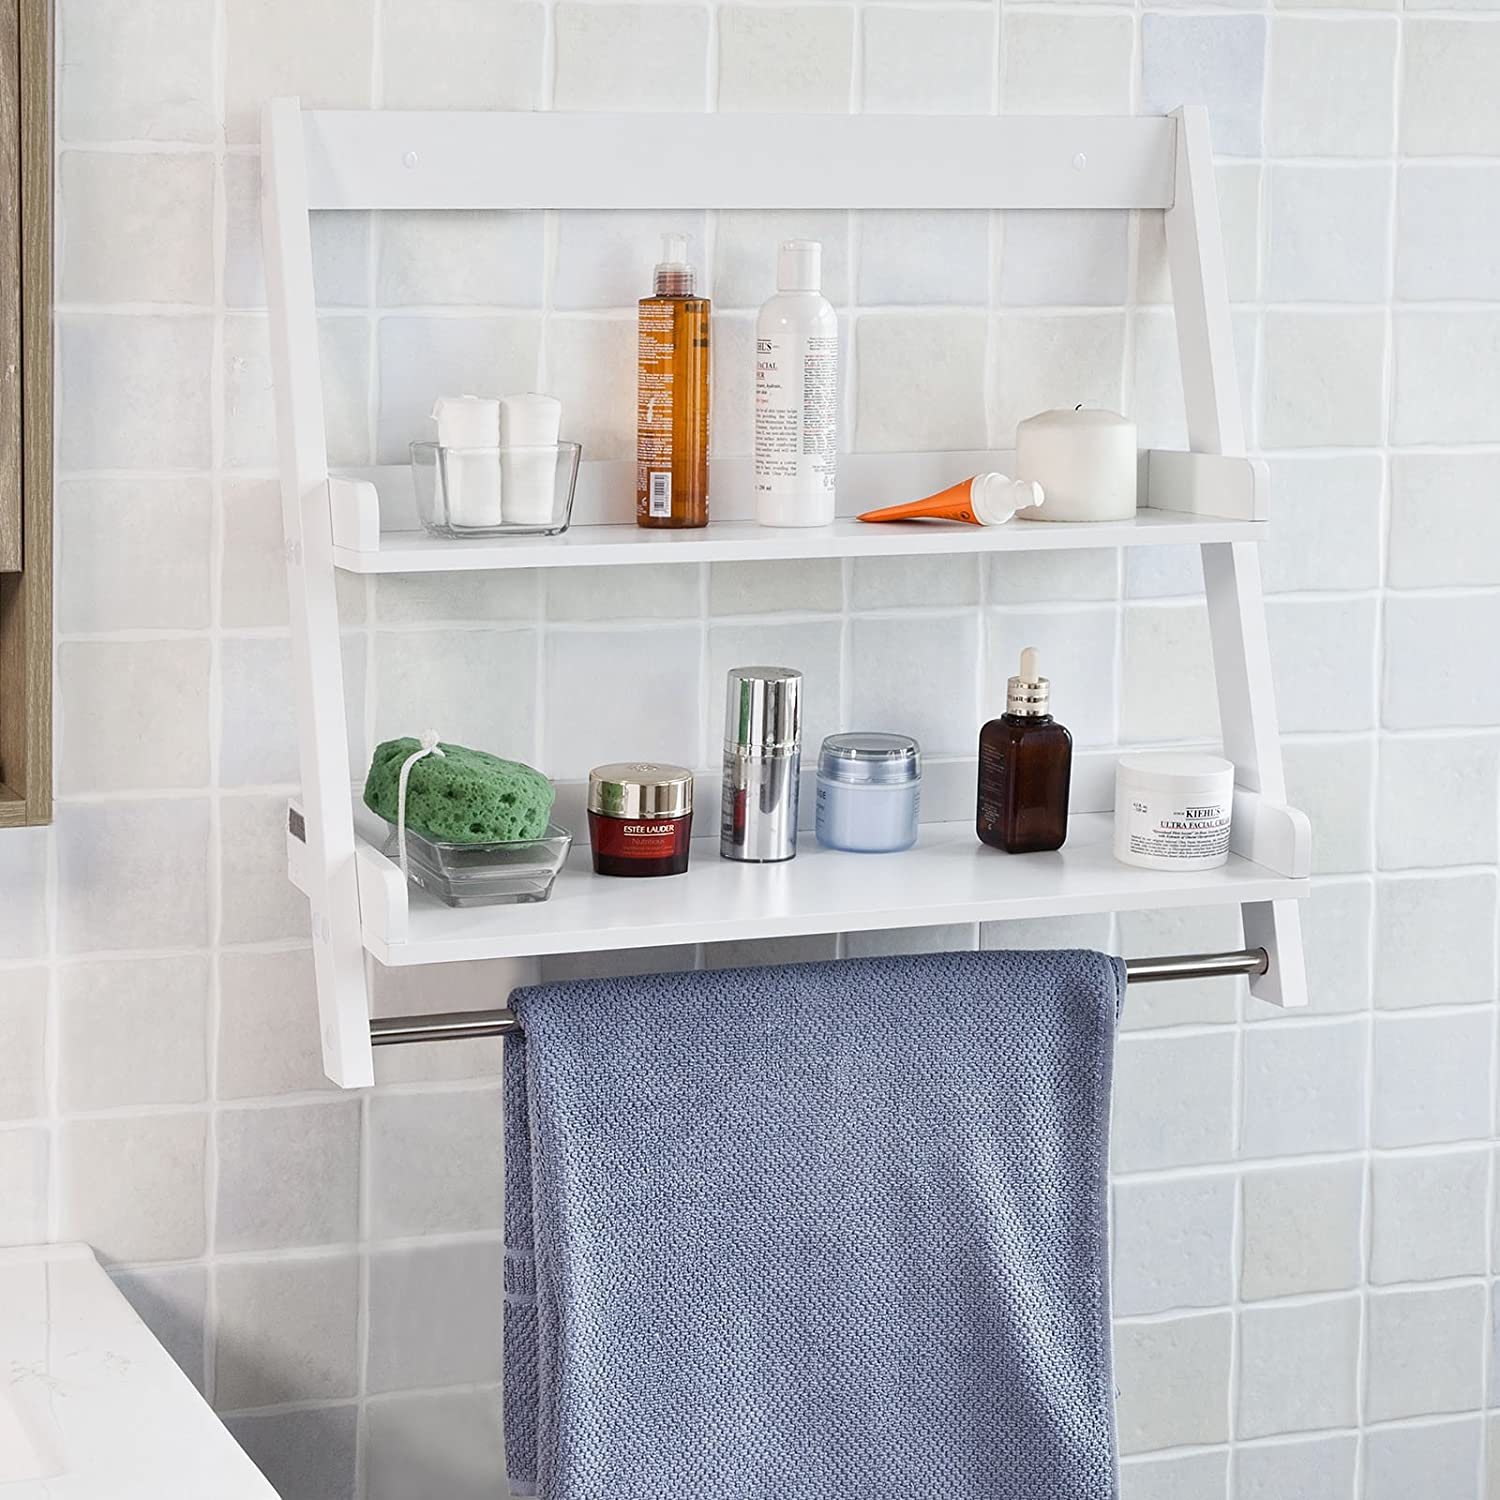 Amazoncom SoBuy FRG117 W White Wall Mounted Shelf